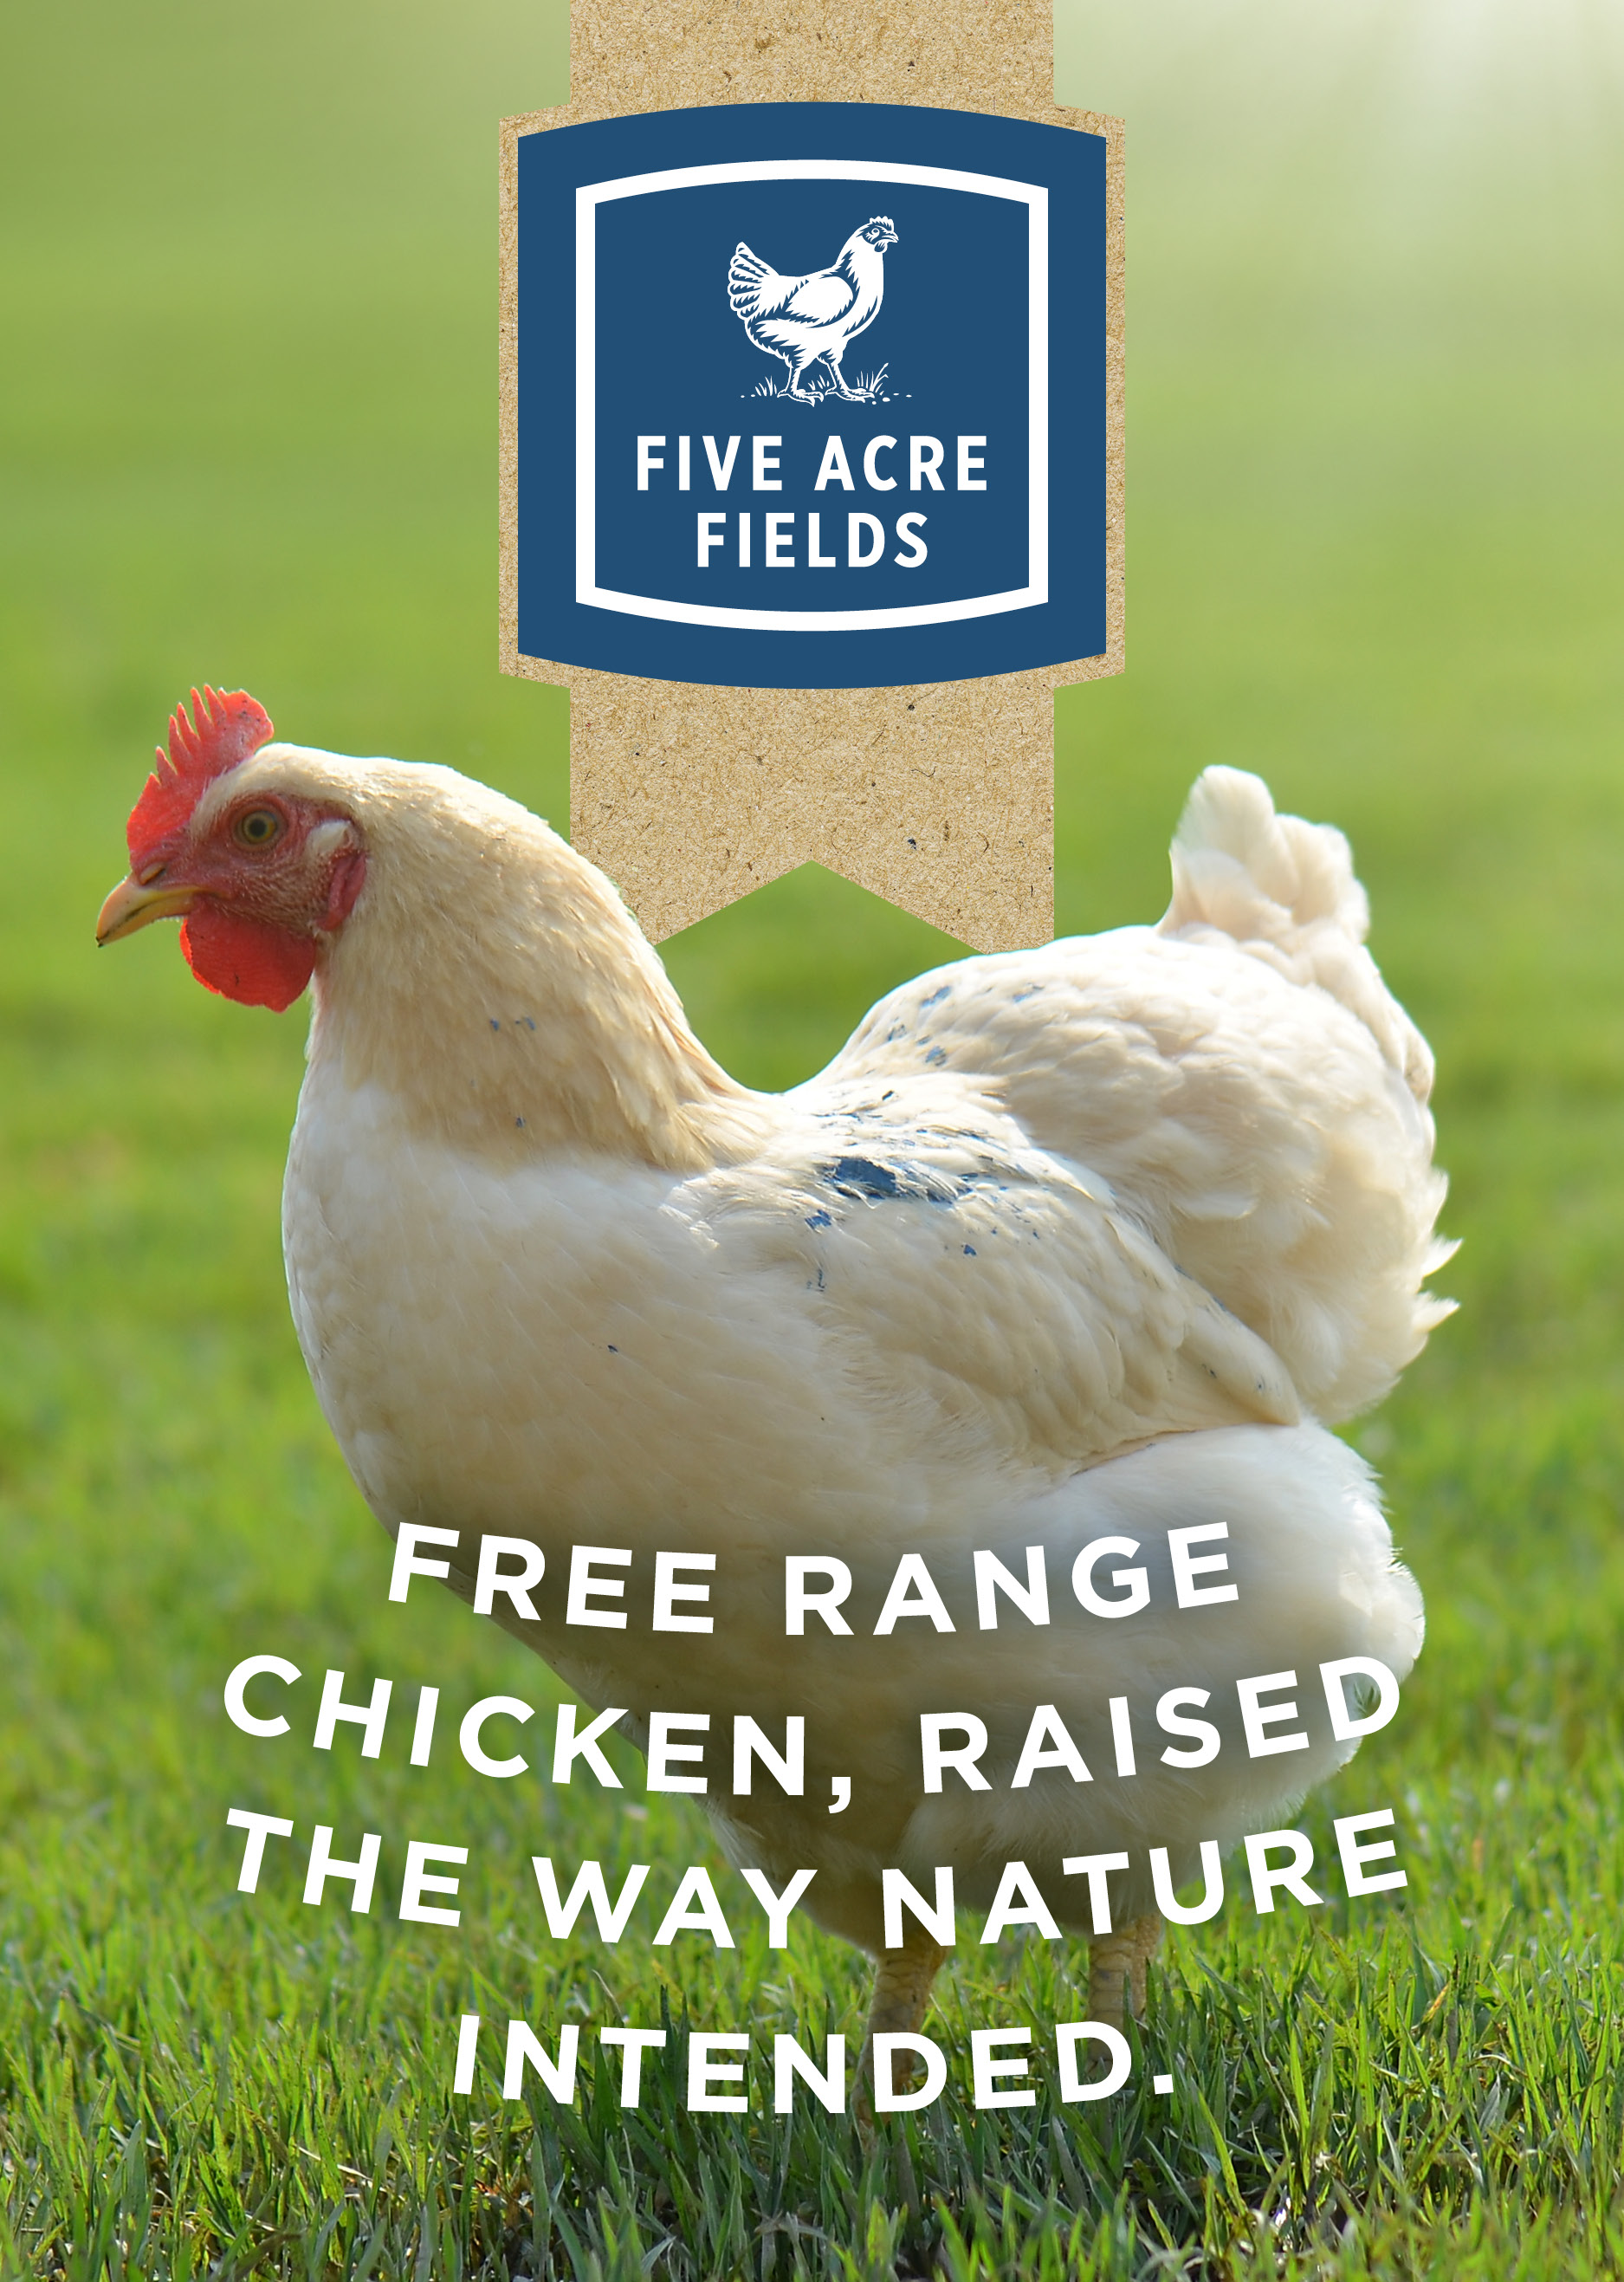 M & J Chickens appoints Melbourne agency Bellwether to handle 'Five Acre Fields' launch